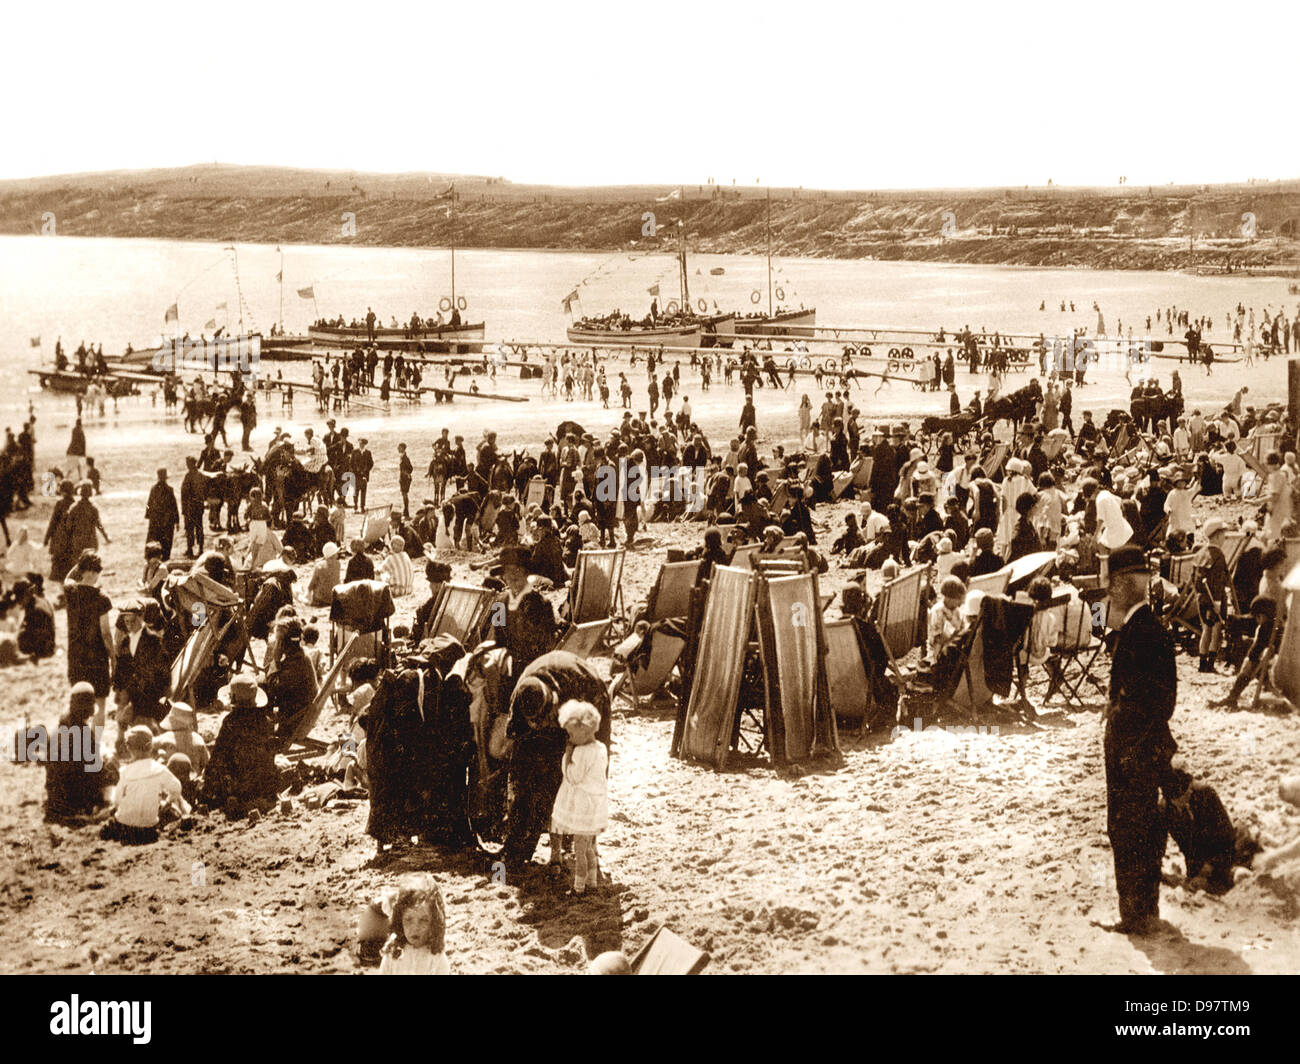 Barry Island early 1900s - Stock Image